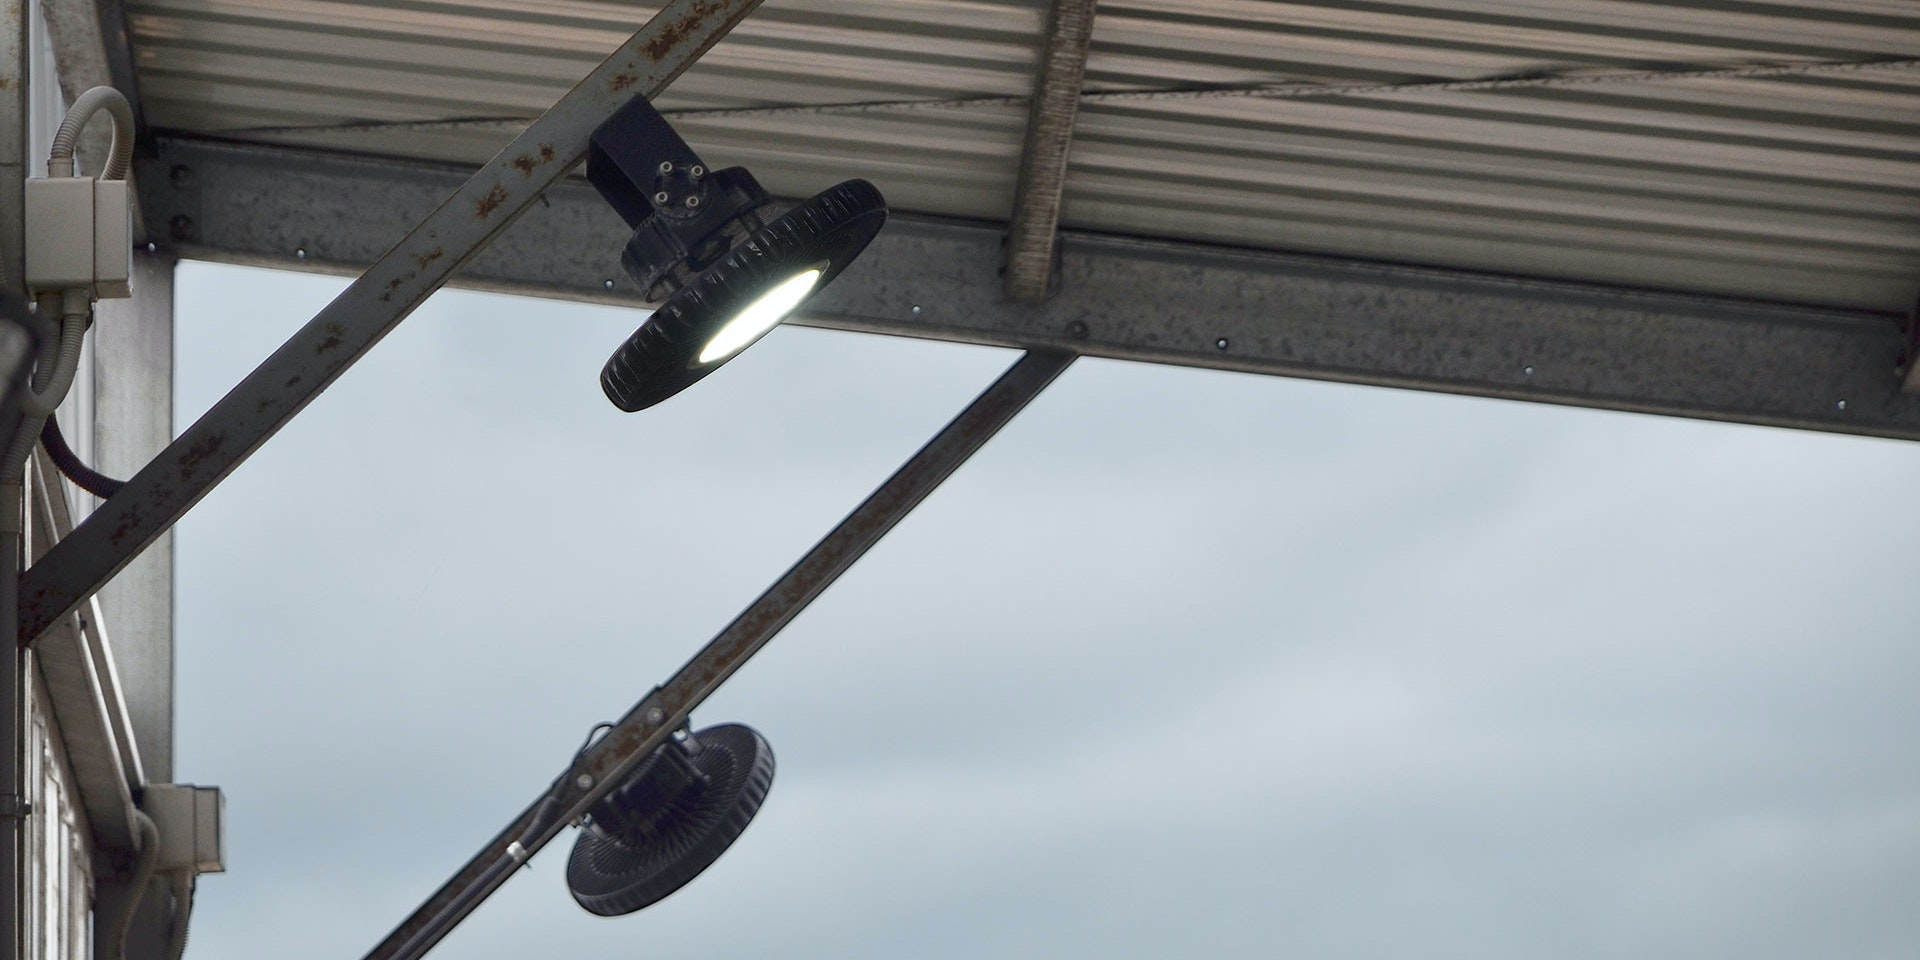 IBYS LED High Bay in application, installed on a wash plant